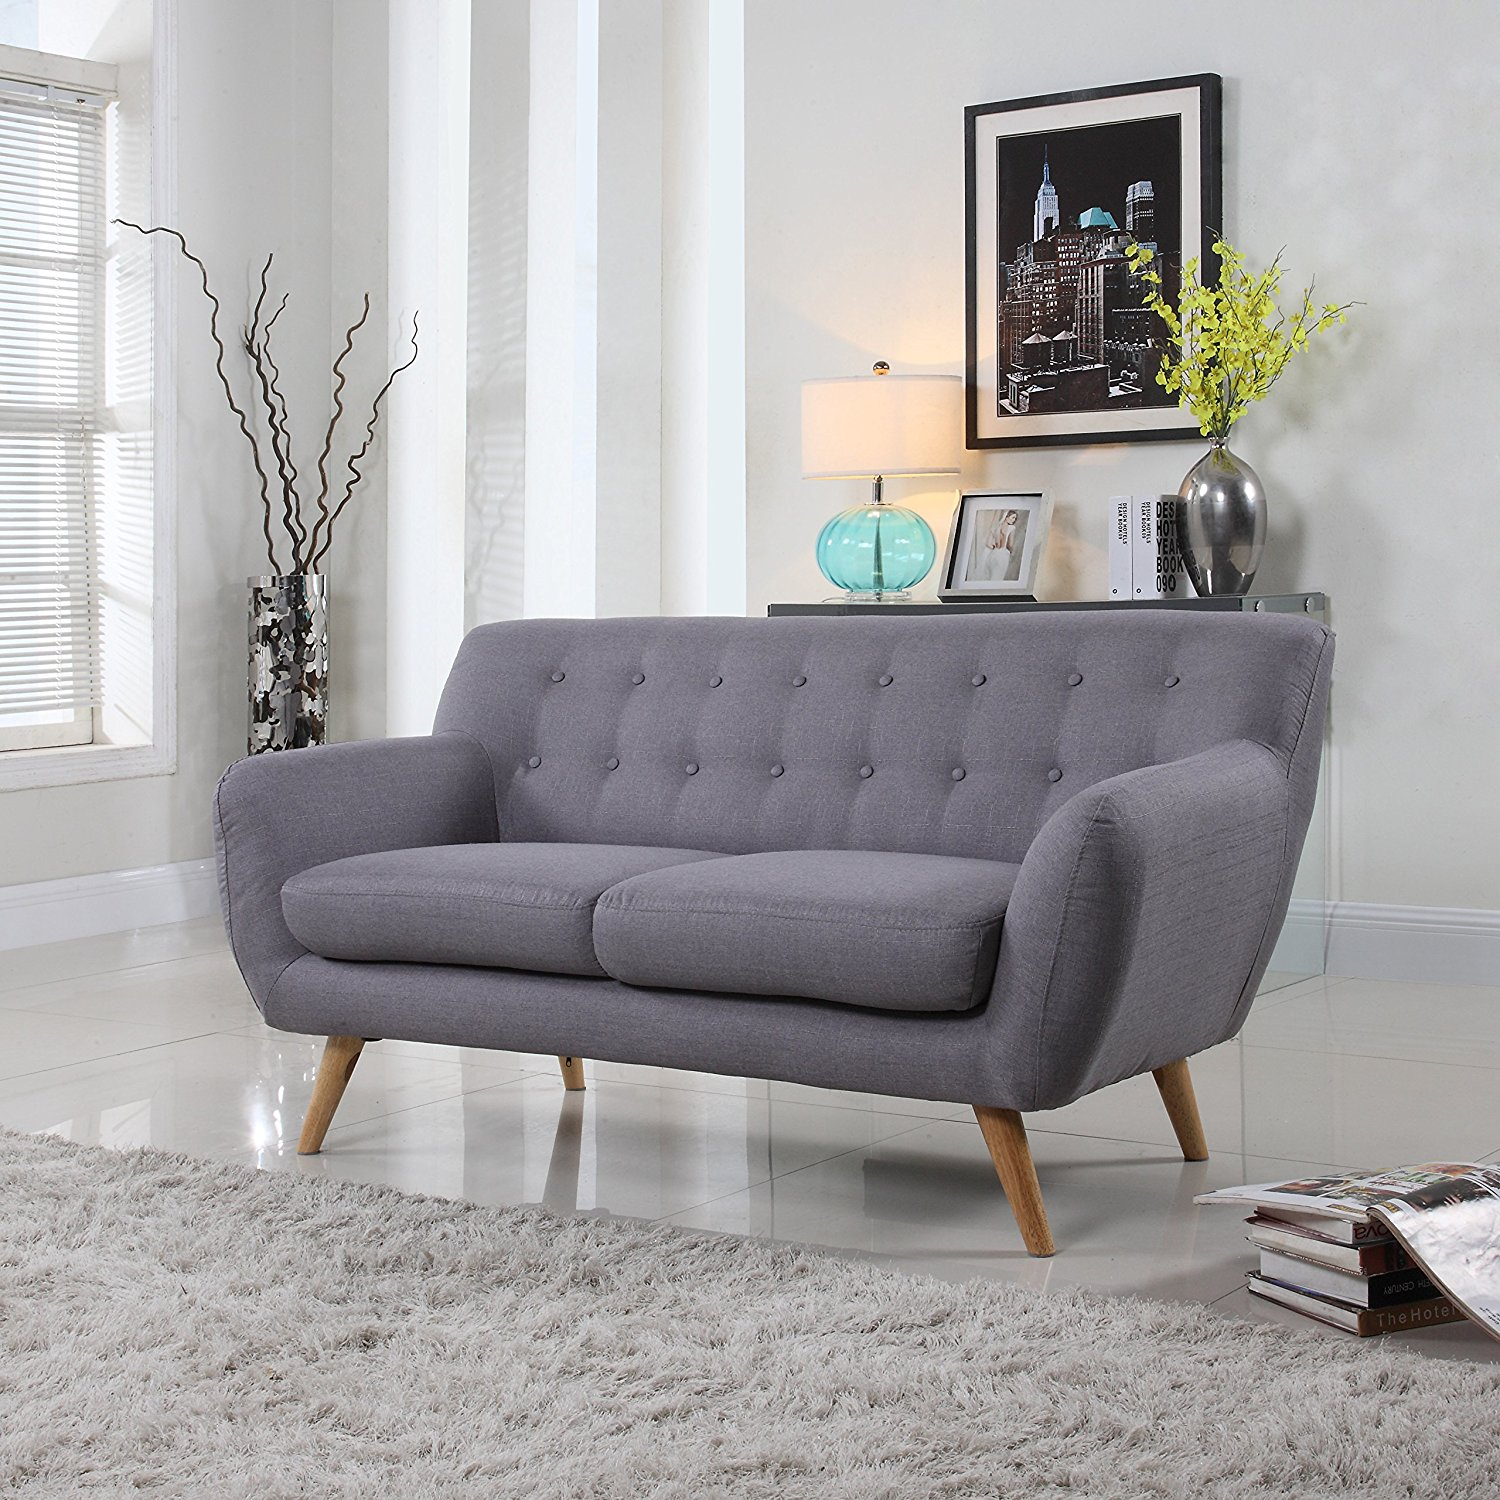 18 jawdroppingly cheap sofa sets you must buy for living for Buying living room furniture